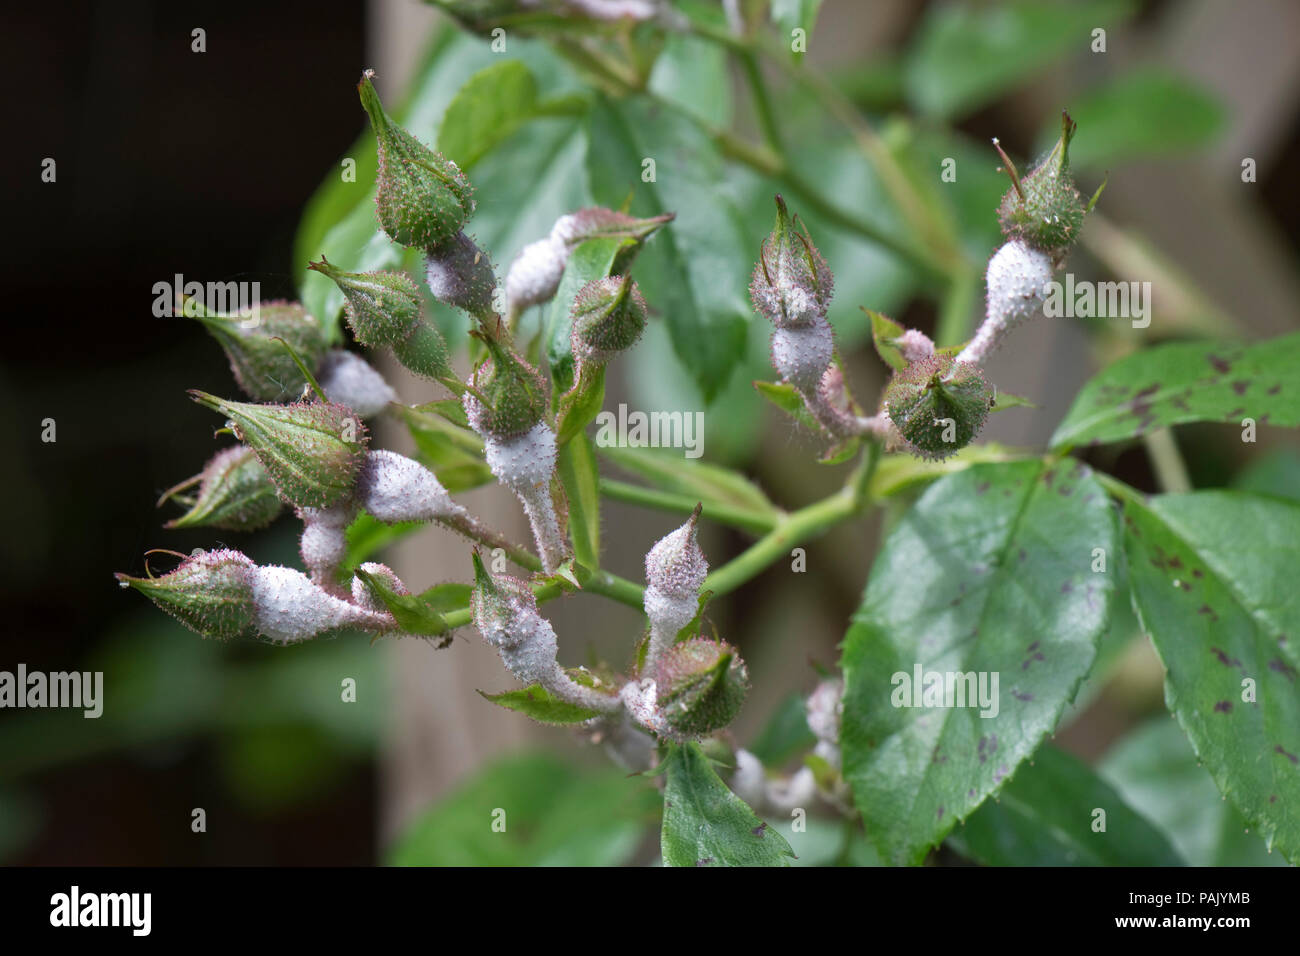 Powdery mildew, Podosphaera pannosa, heavy infection around the bases of rose buds 'American Pillar', June - Stock Image